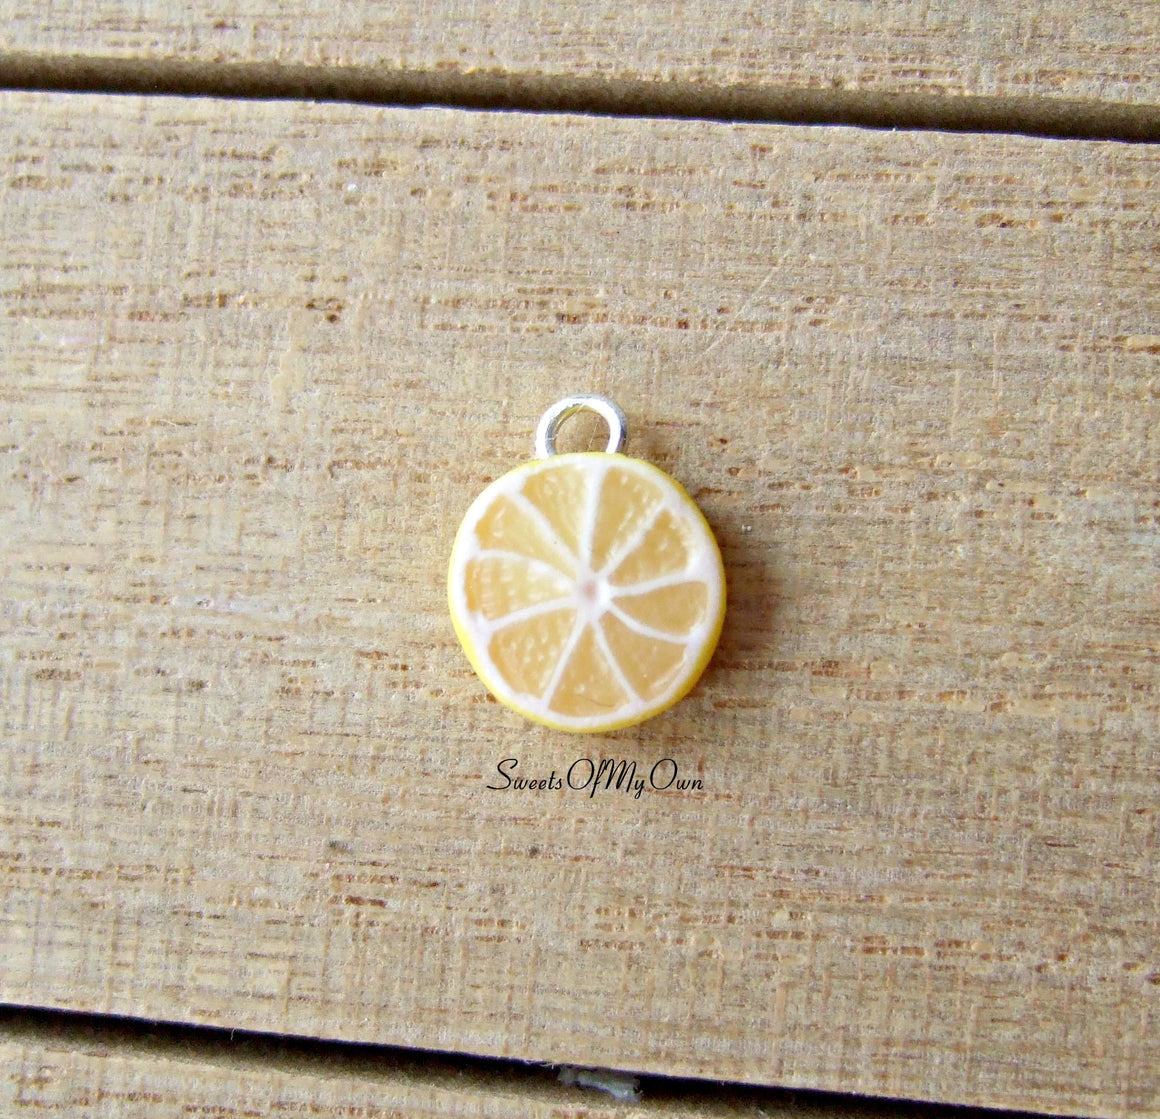 Lemon Slice Charm (small) - SweetsOfMyOwn